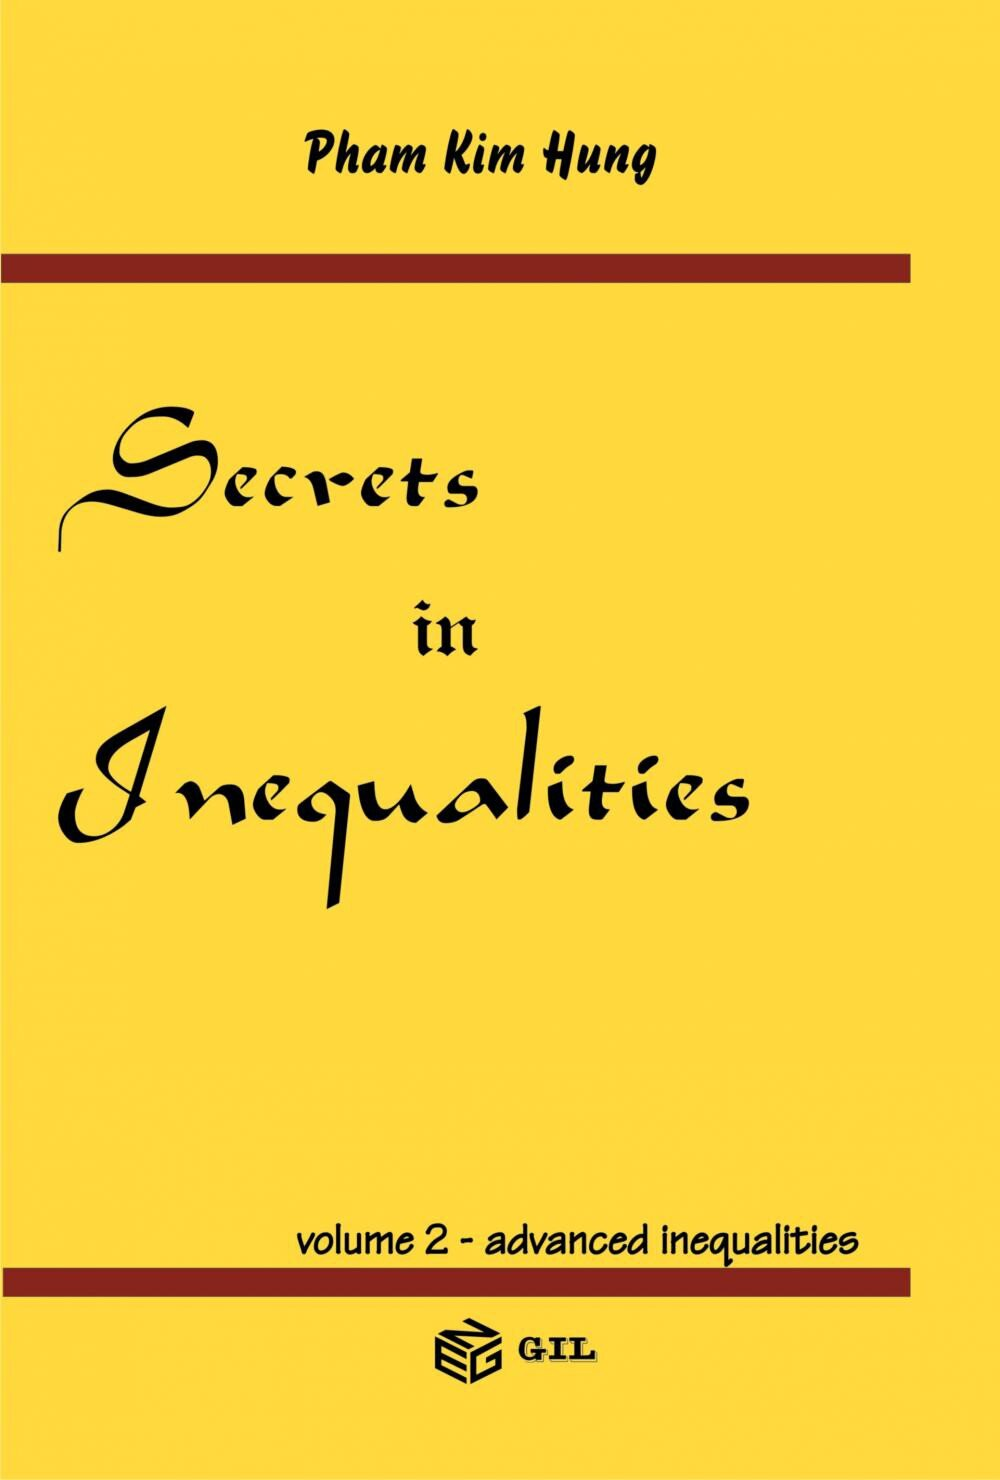 Secrets in inequalities Vol II (eBook)